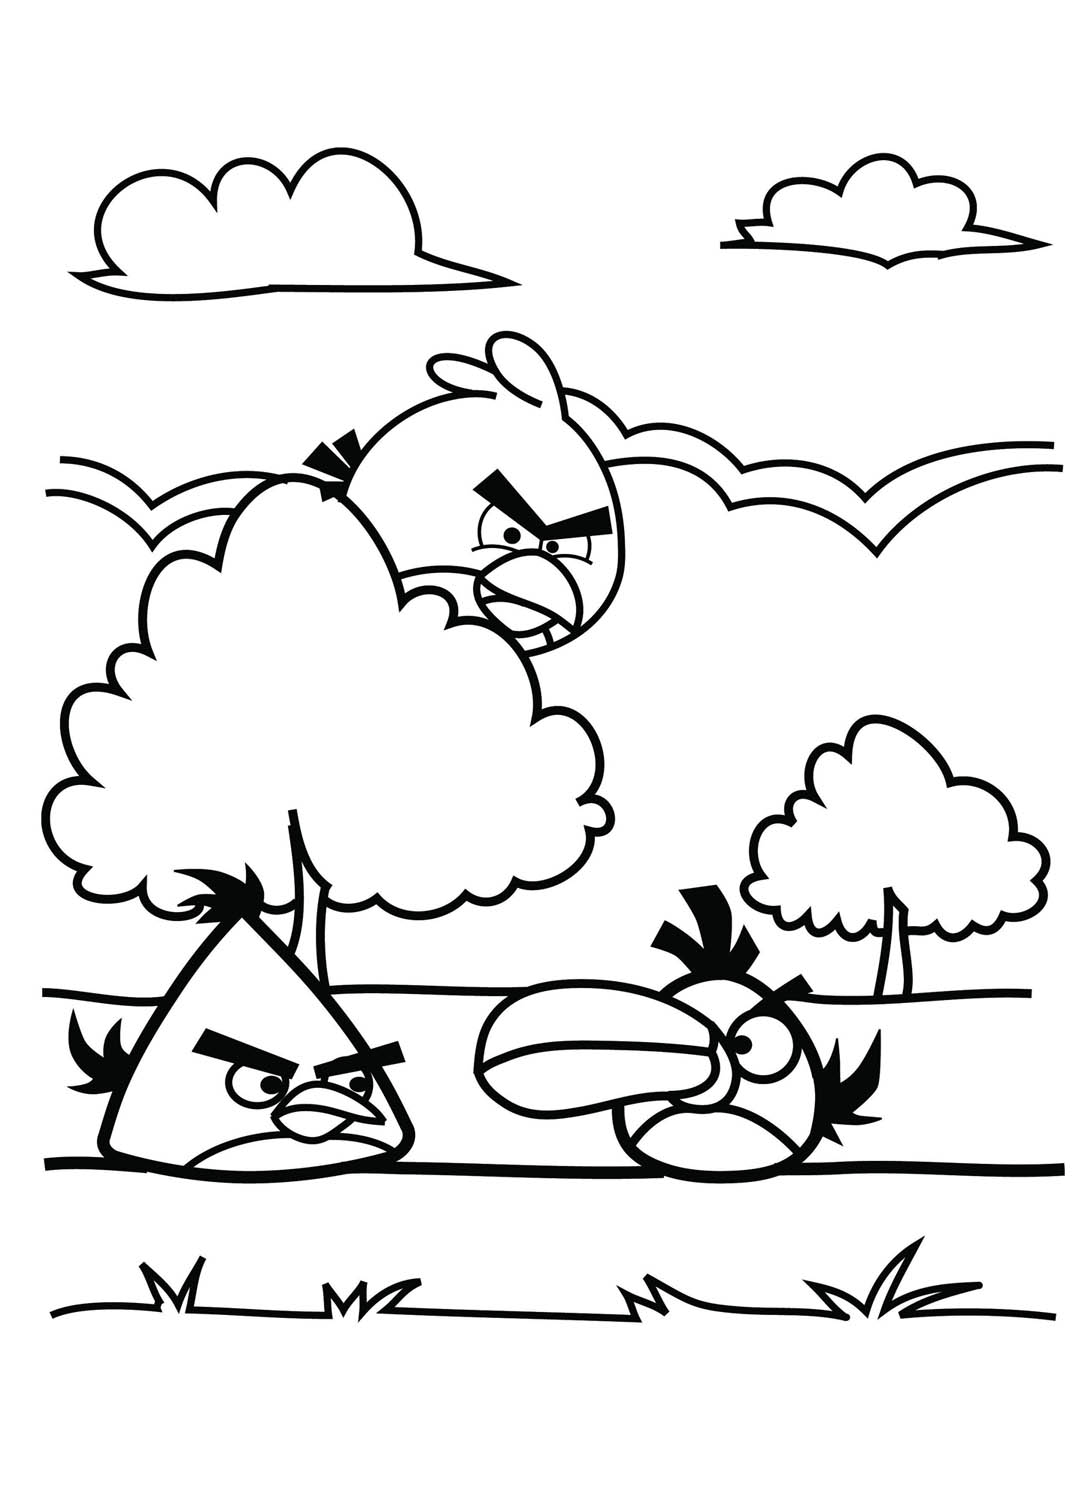 520 Top Angry Birds Coloring Pages For Preschoolers  Images